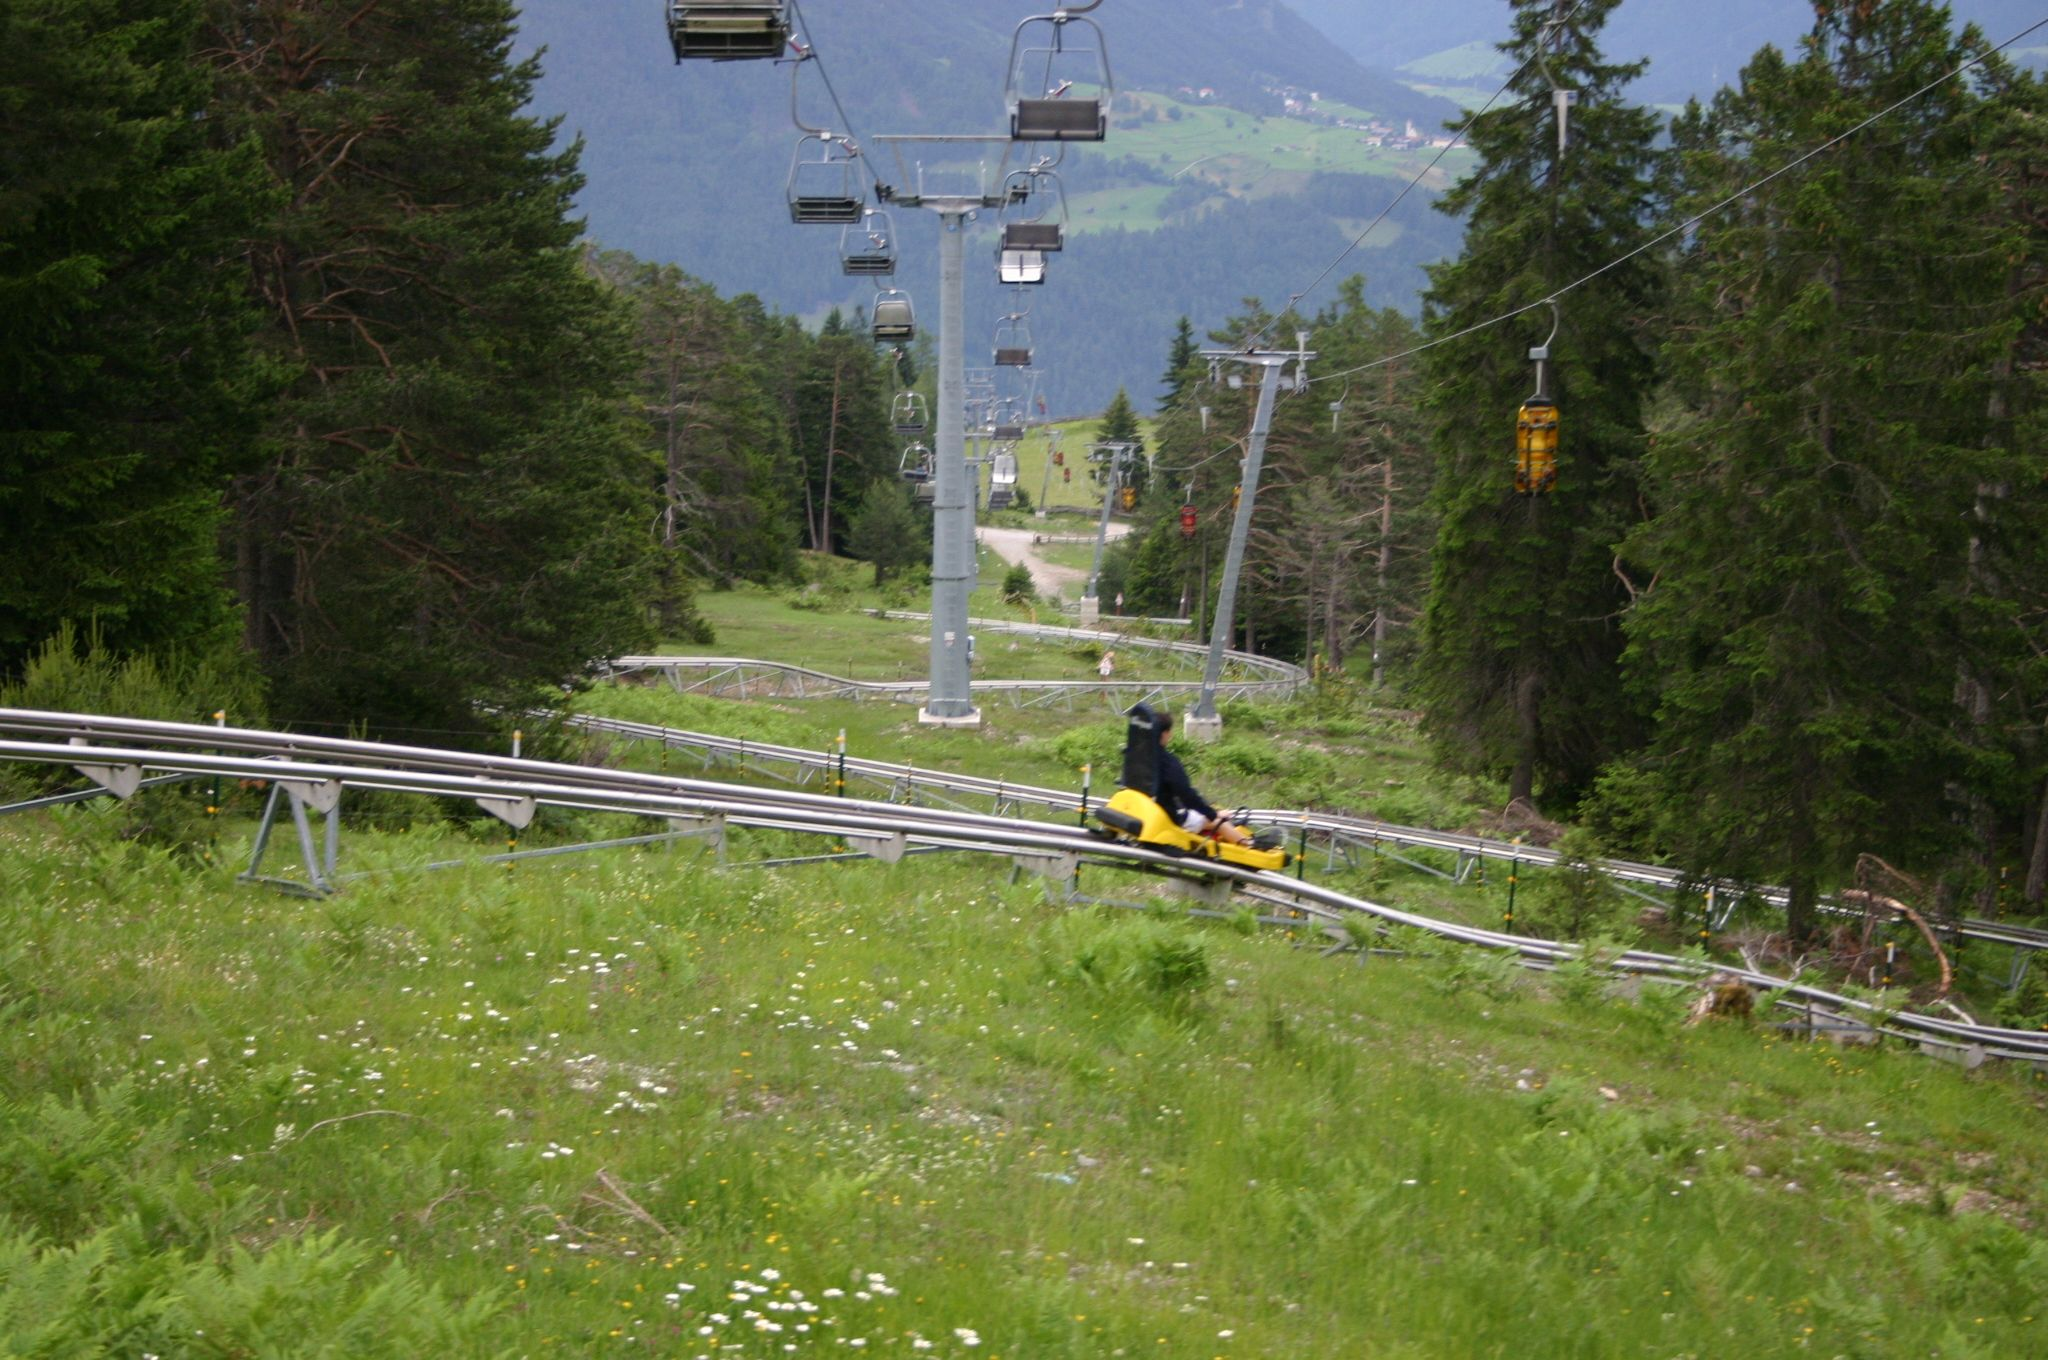 I want to ride an alpine coaster!